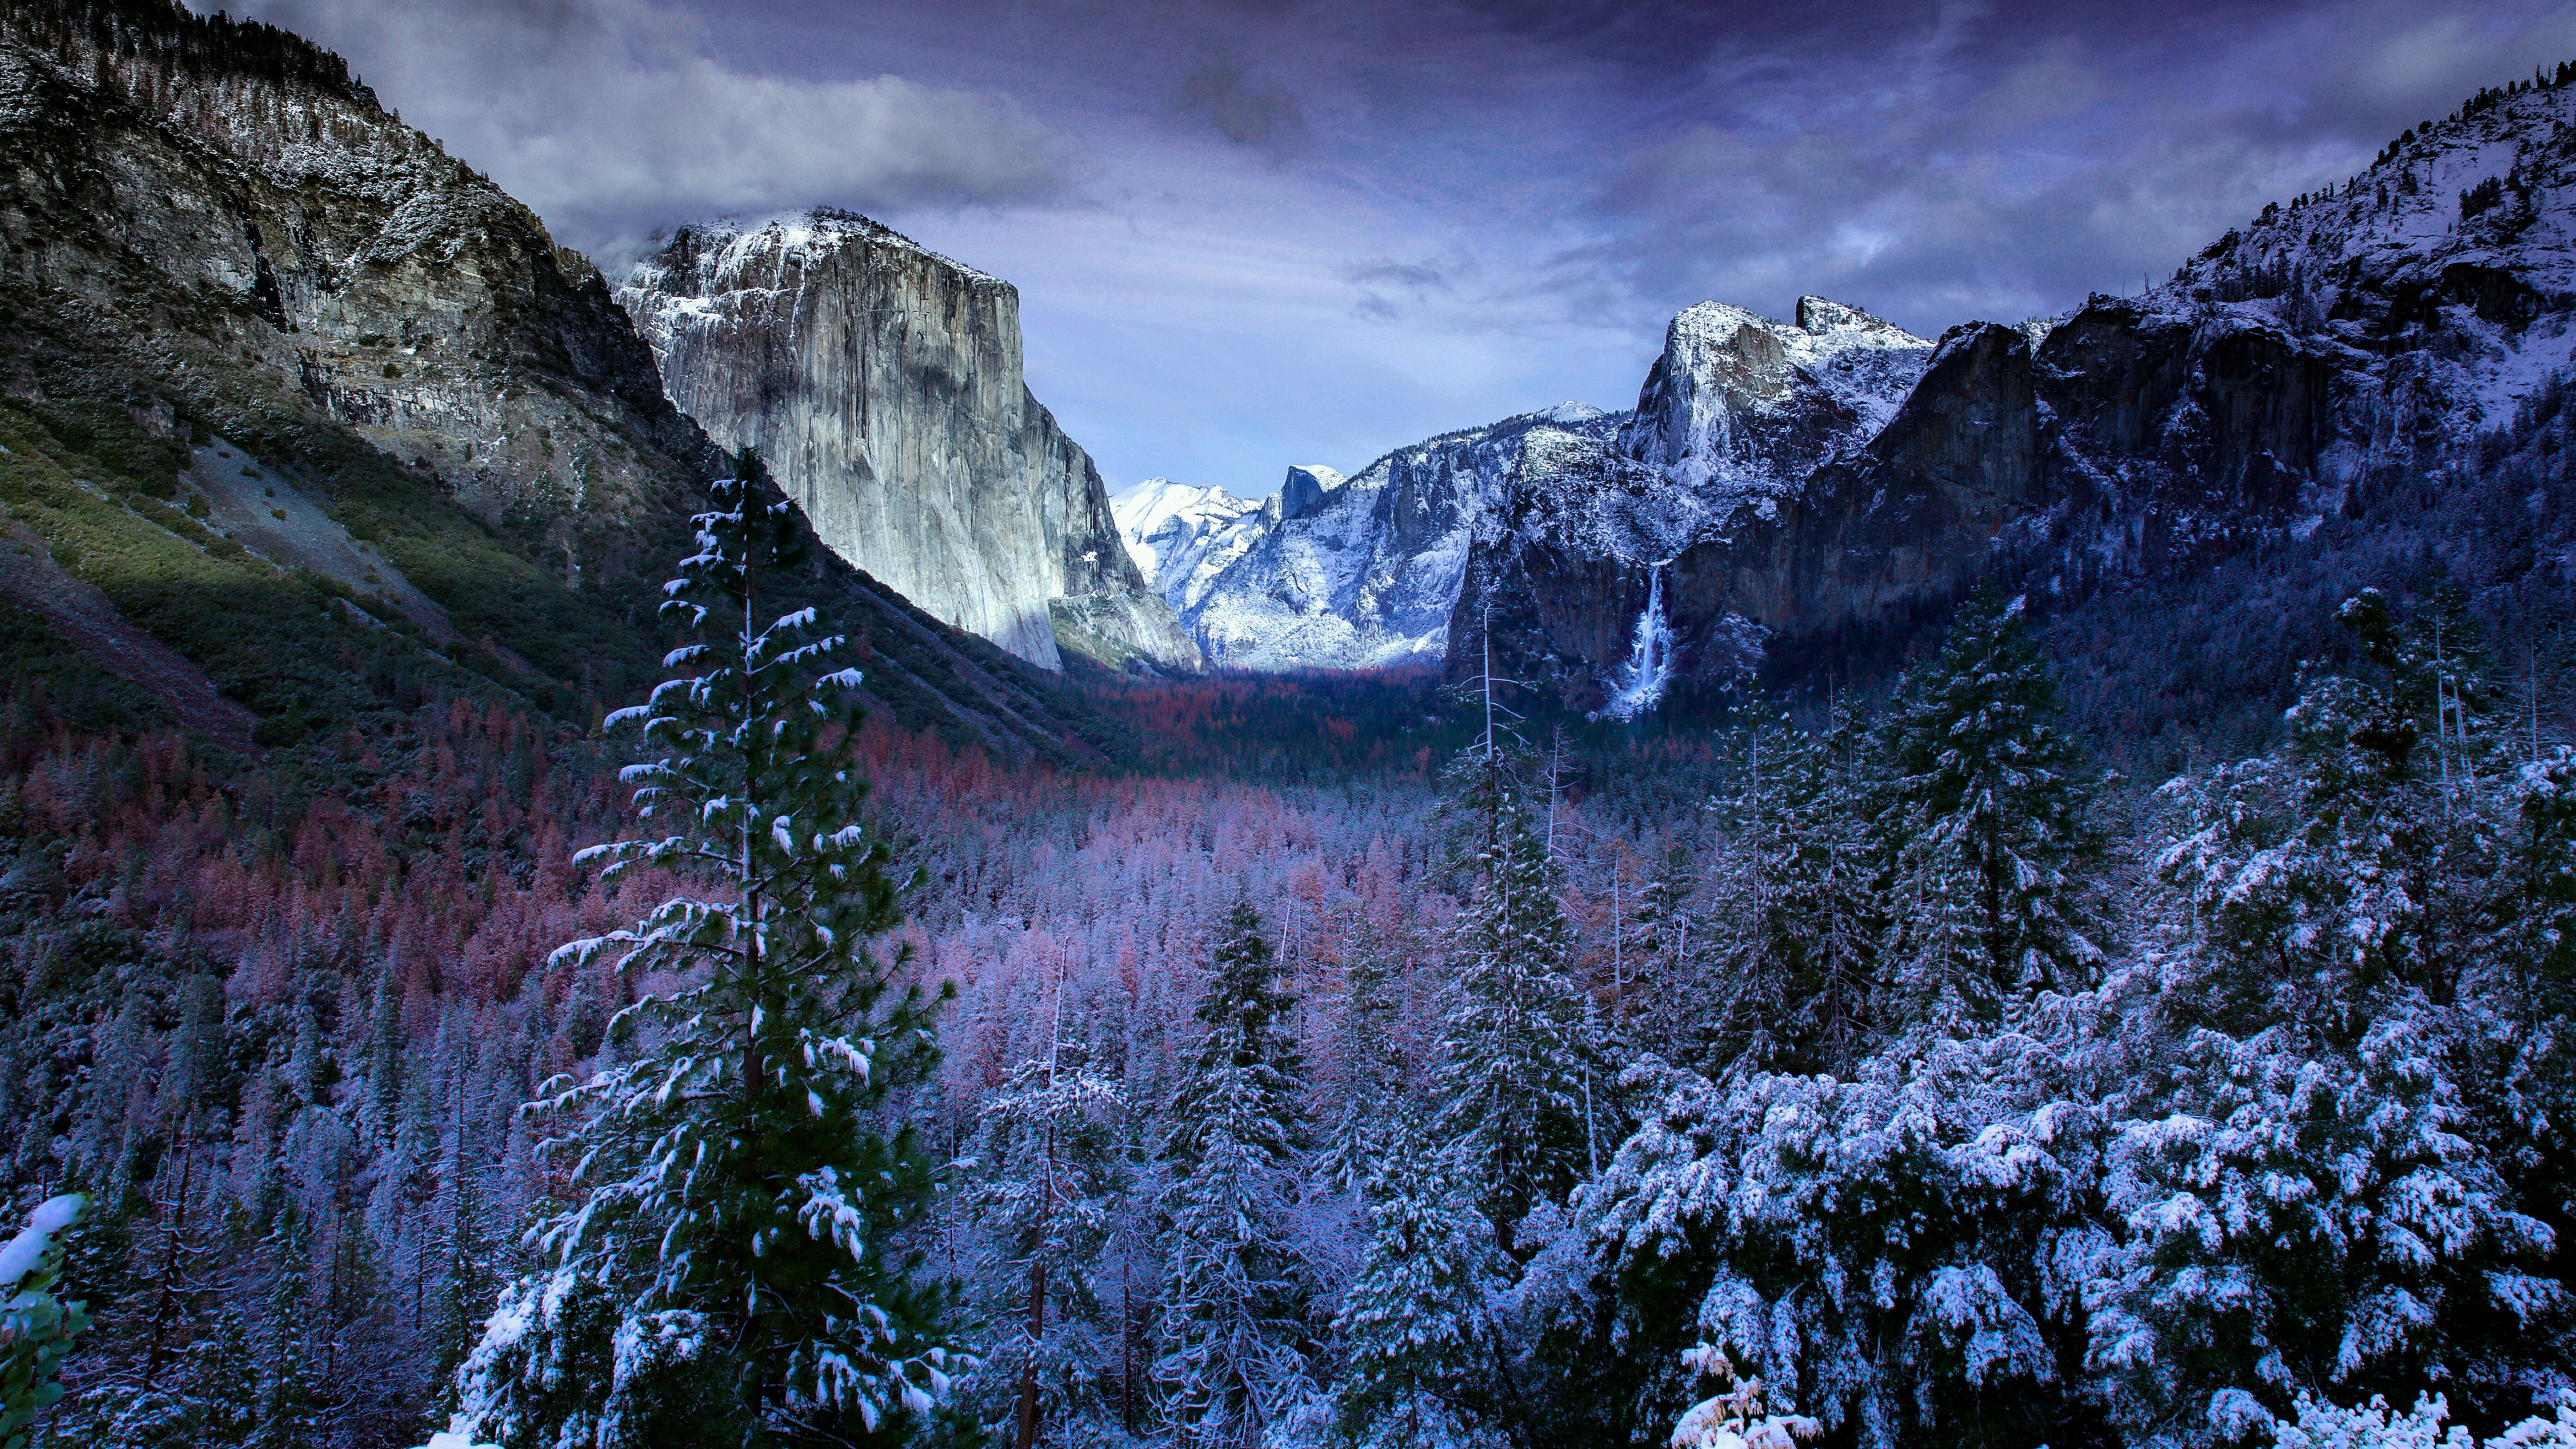 7680x4320 7680x4320 Winter Mountains And Trees 8K Wallpaper, HD Nature ...